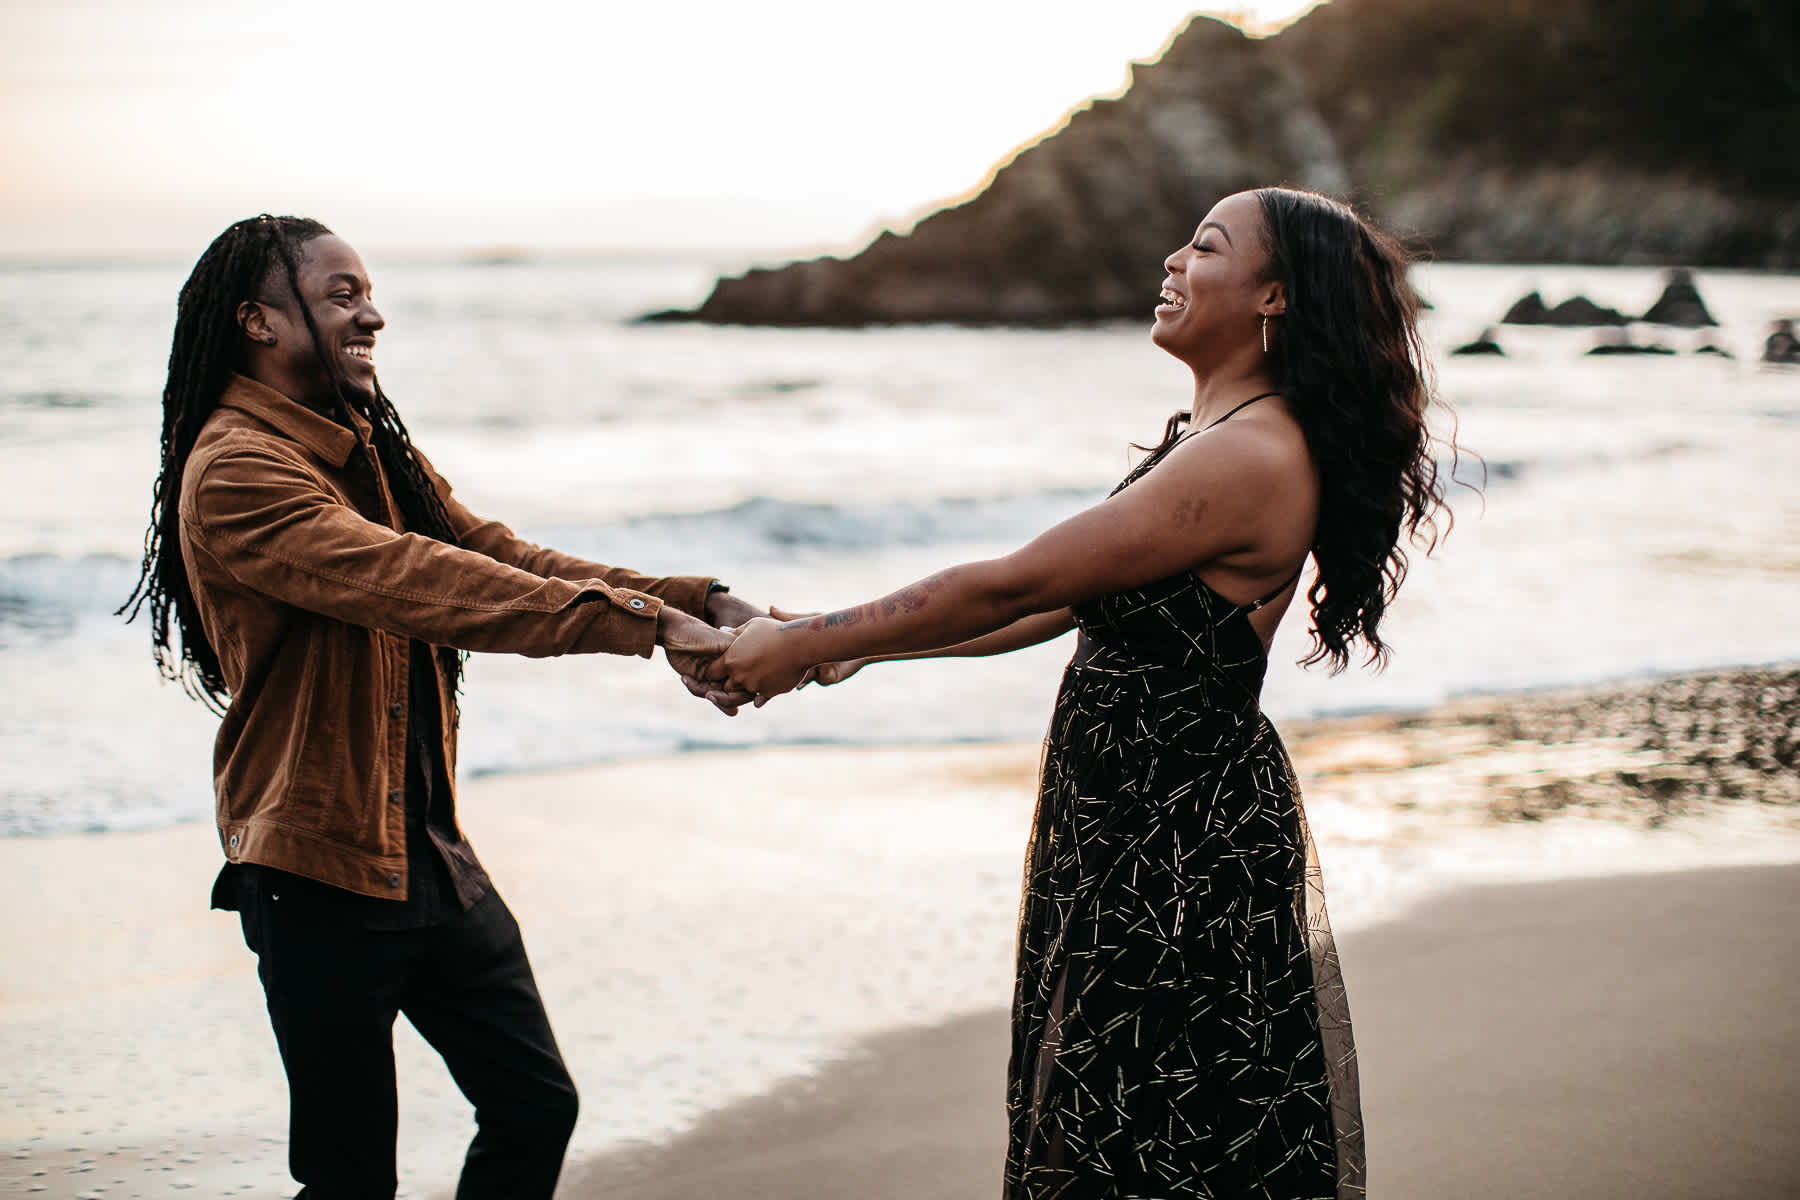 muir-beach-ca-spring-lifestyle-engagement-session-41